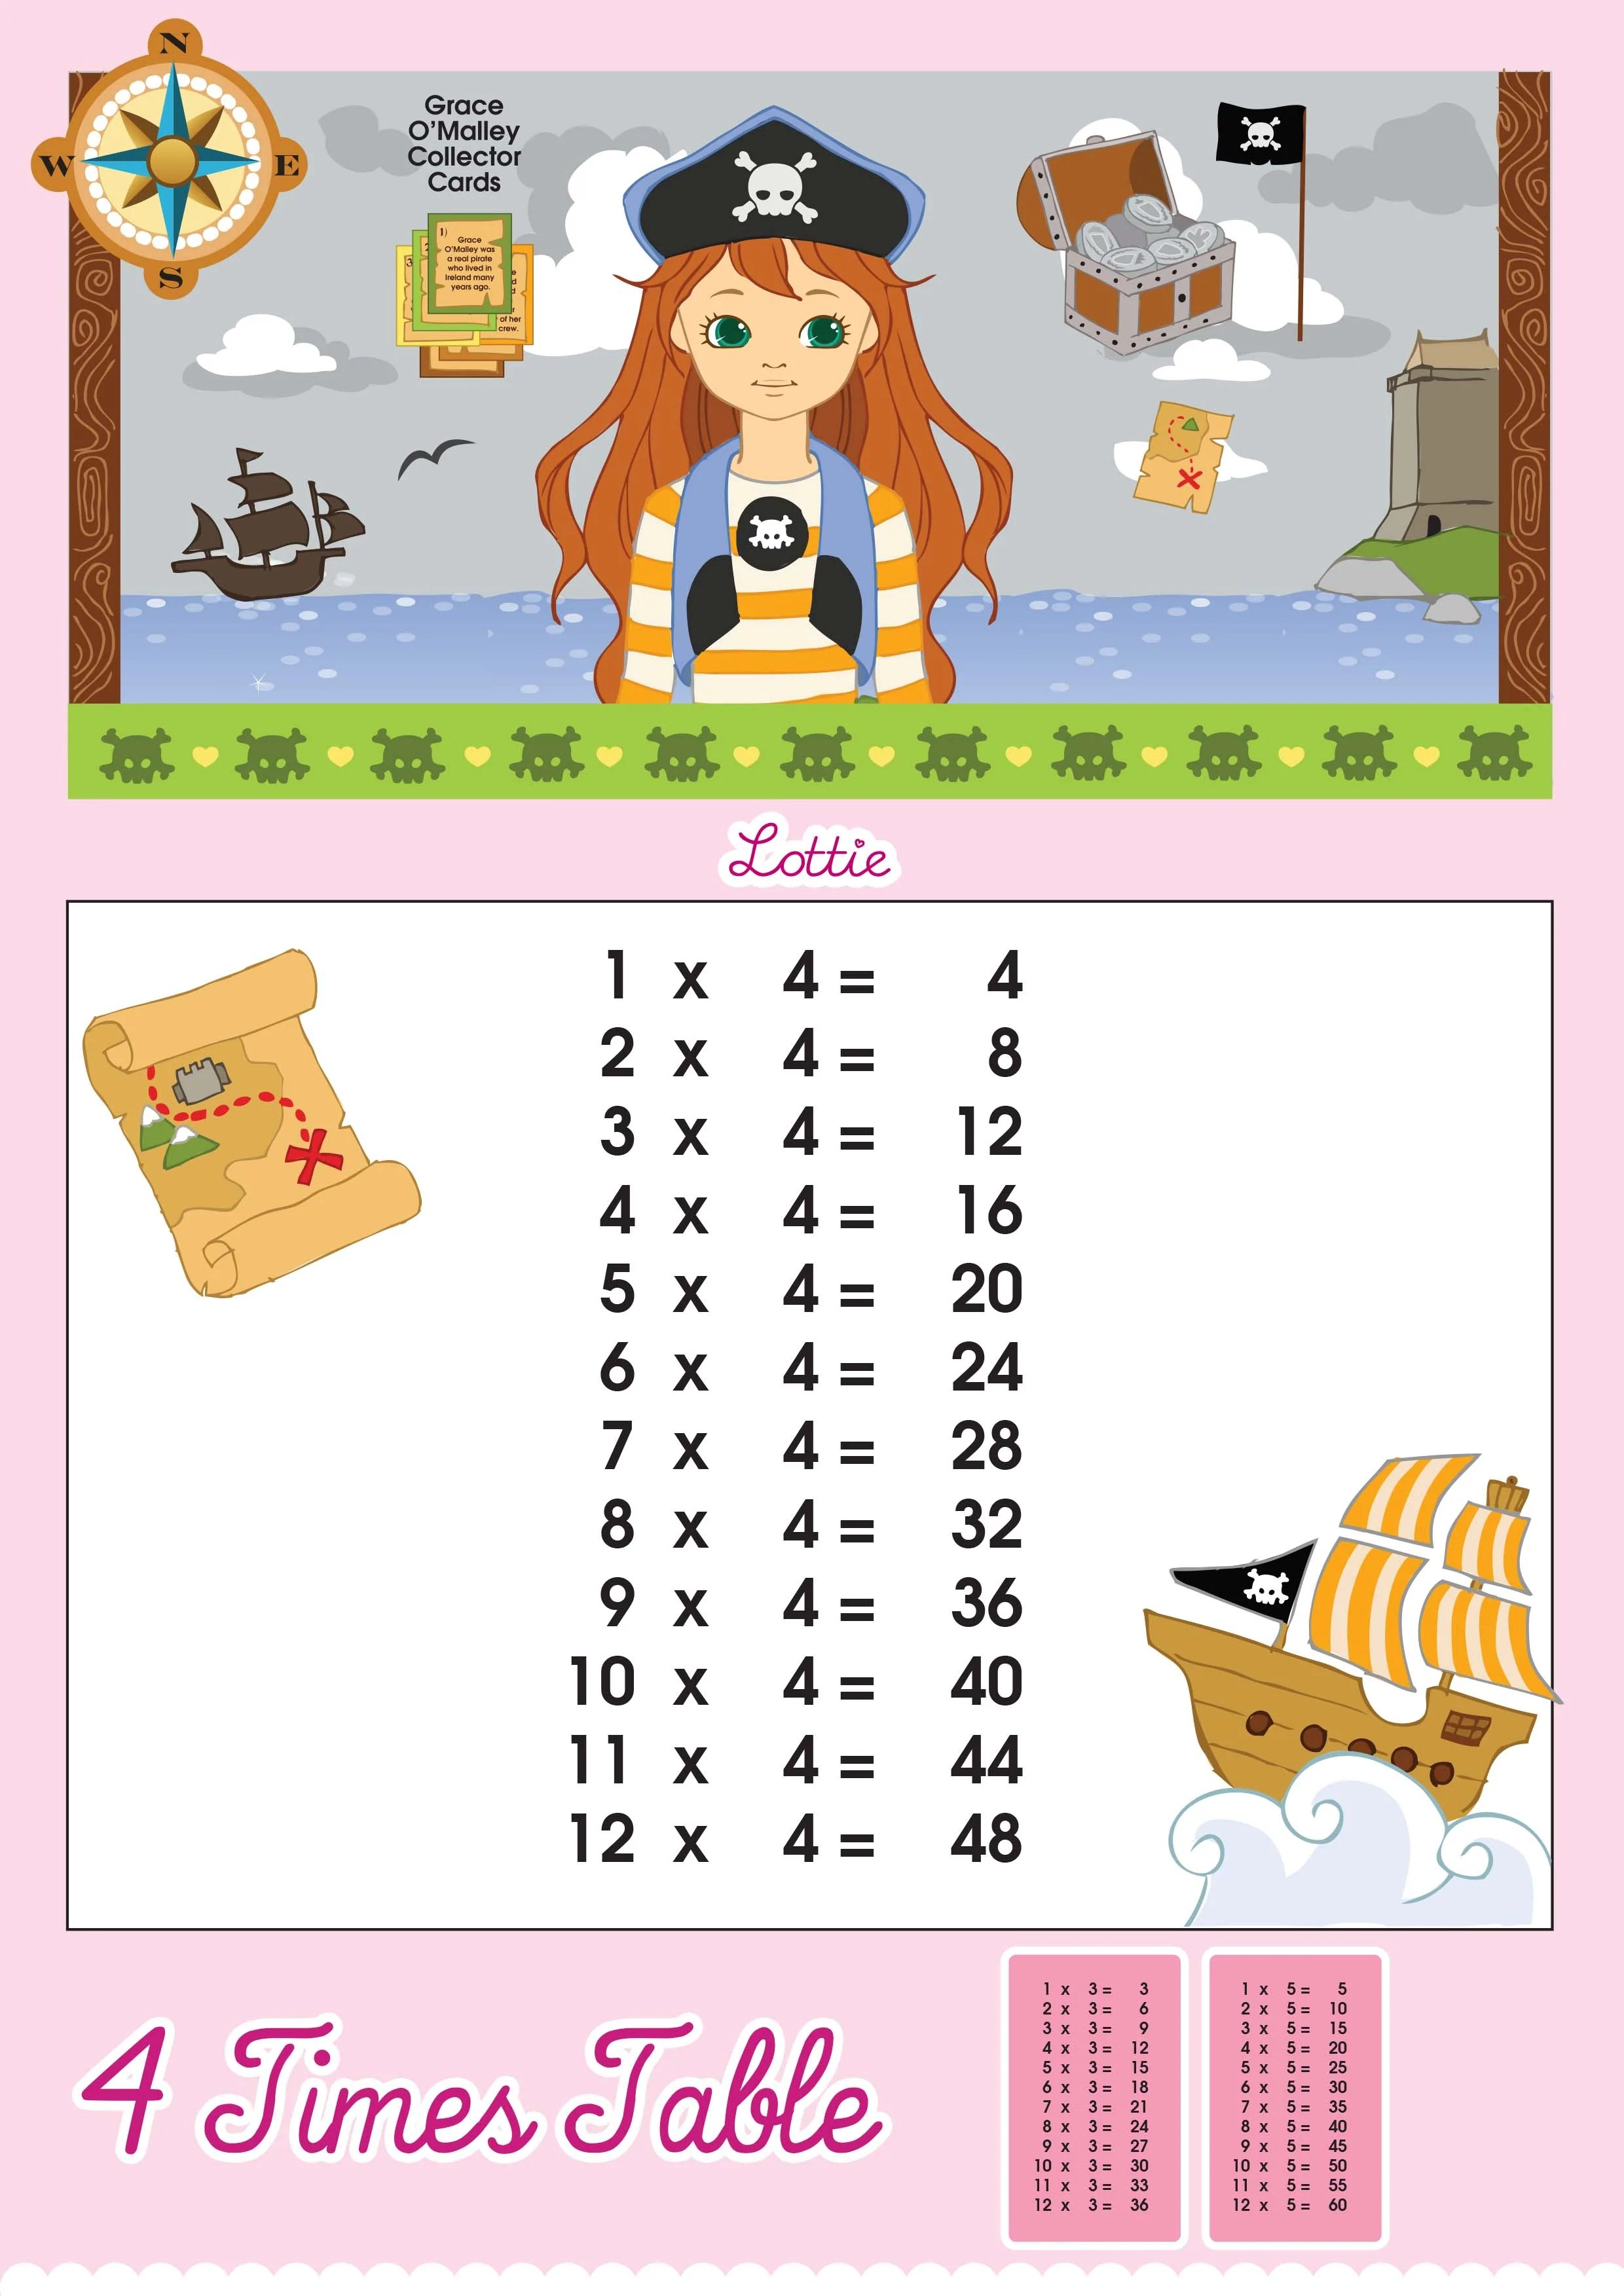 4 Times Table Printable Chart Lottie Dolls